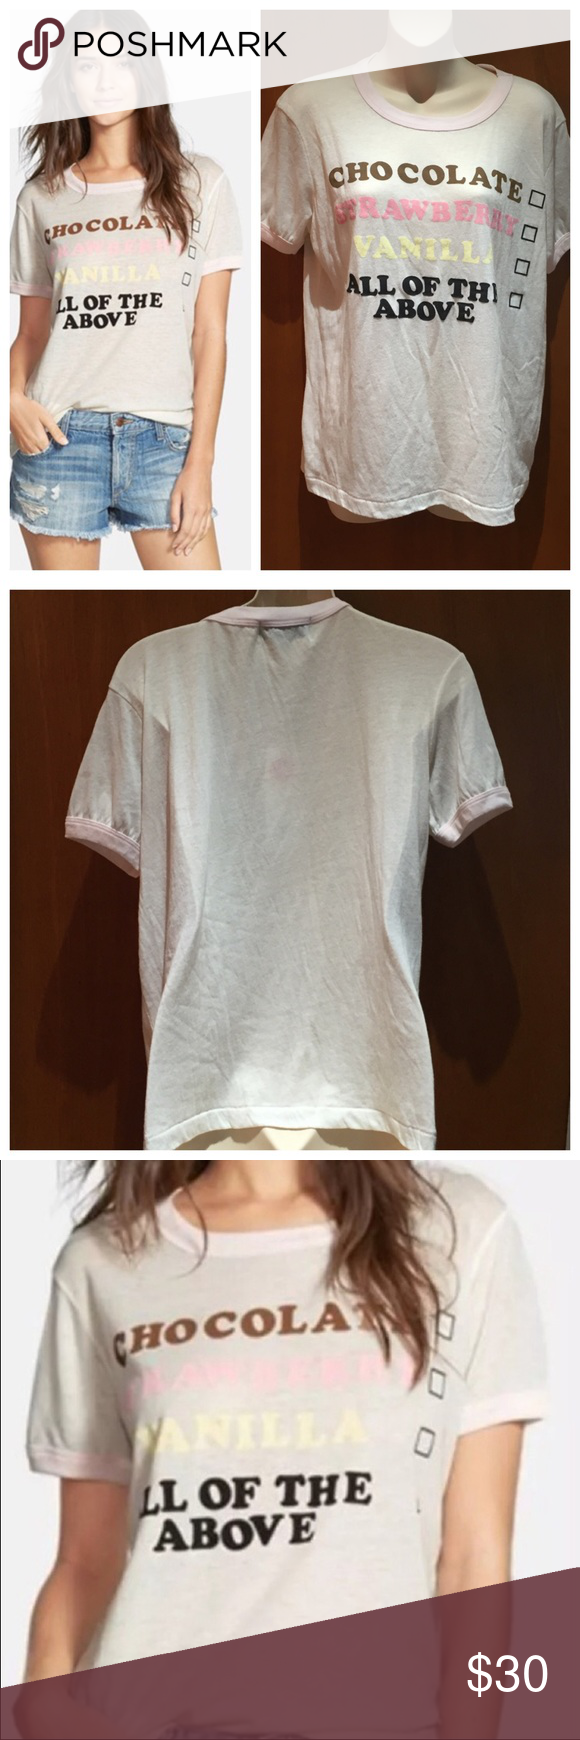 Wildfox Ice Cream Sundae All of the above T shirt ▪Wildfox Ice cream sundae All of the above graphic t shirt ▪️Size Med ▪️New with tags ▪️Color is a cream color  ▪️Very minor piling on the shoulders. Please see photo.  ▪️T shirt is so super soft!  ❌Trades Reasonable offers Wildfox Tops Tees - Short Sleeve